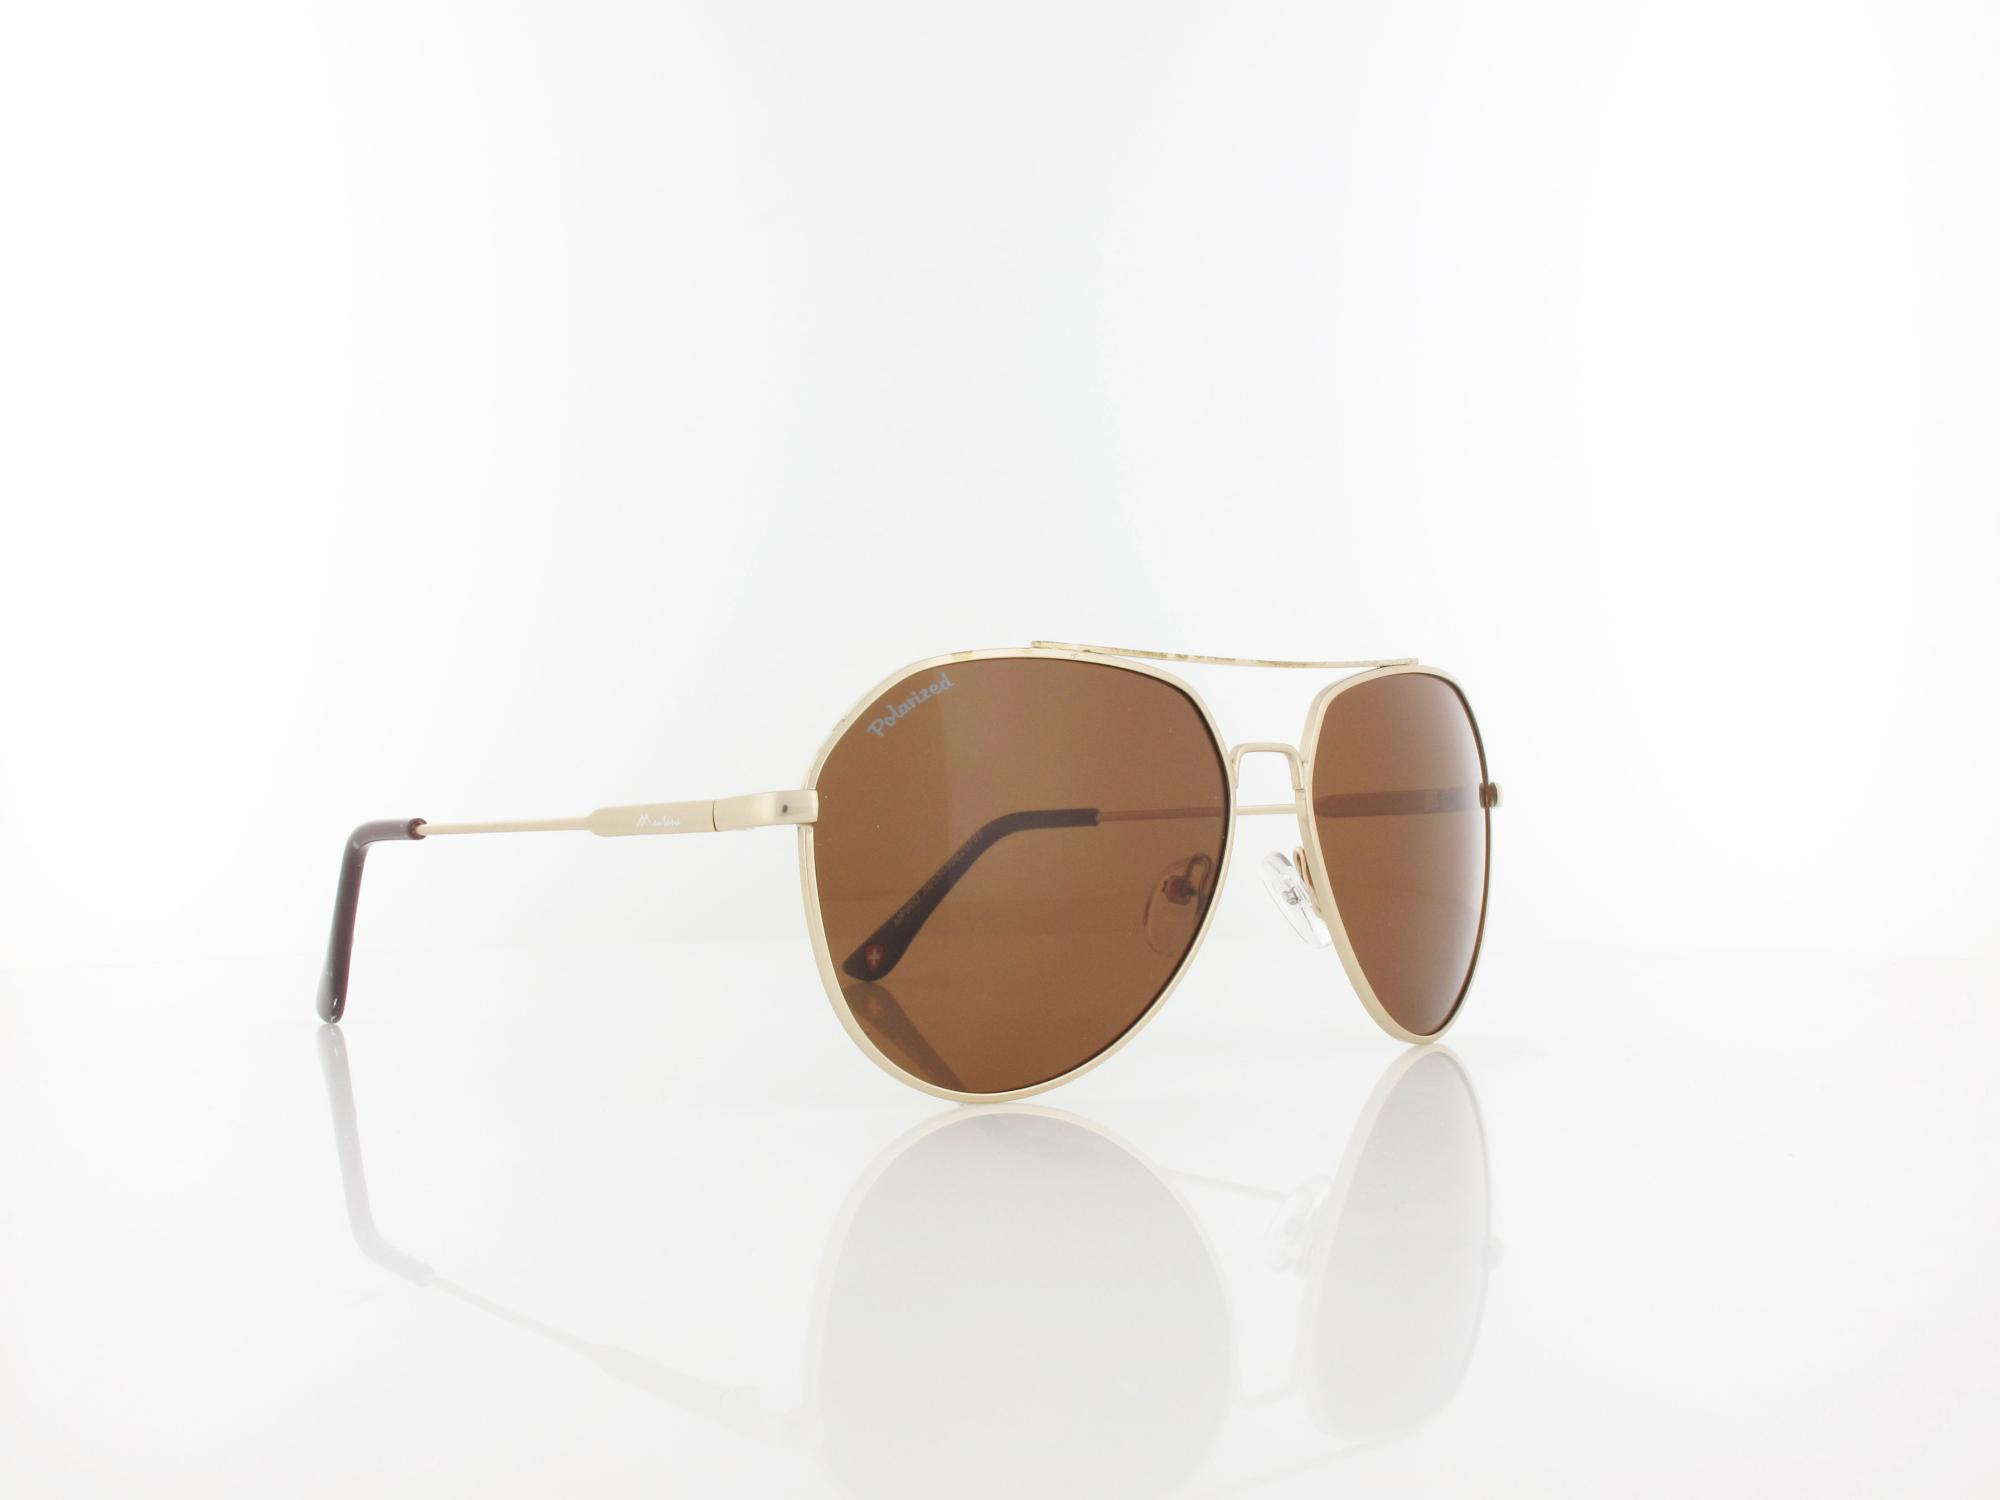 Brilando | MP90 D 57 | gold / brown polarized